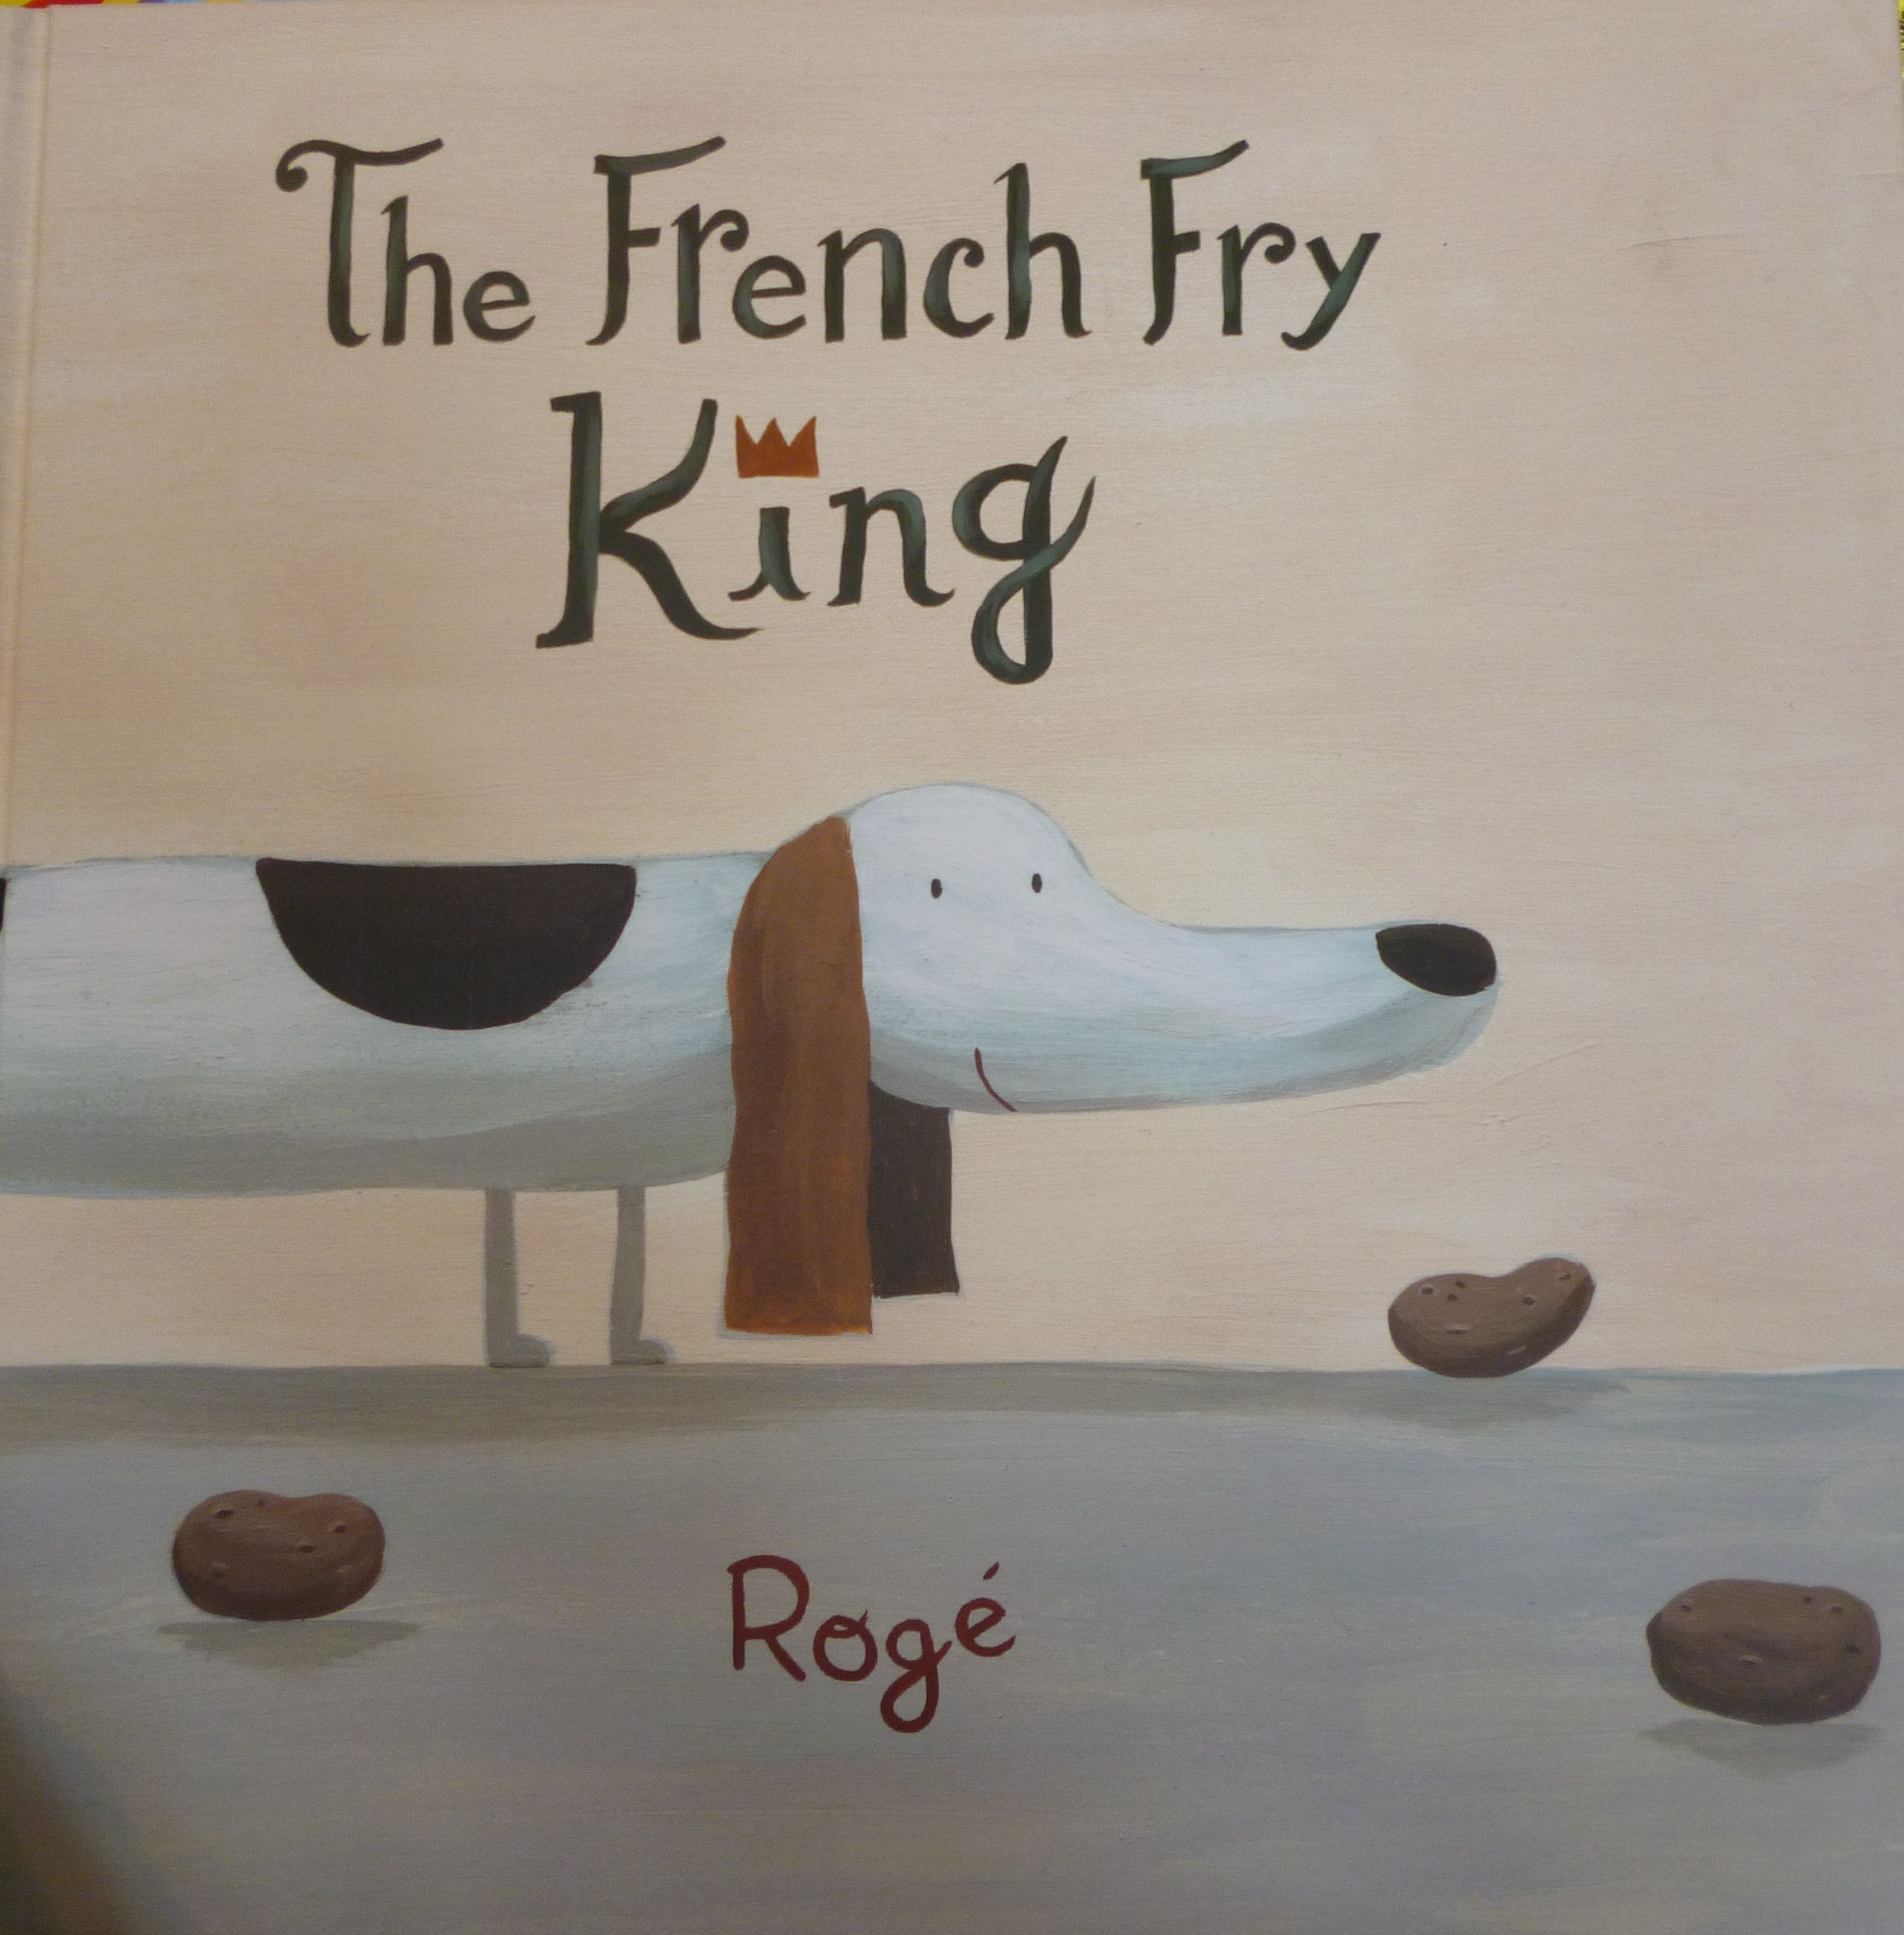 Rogé, The french fry king